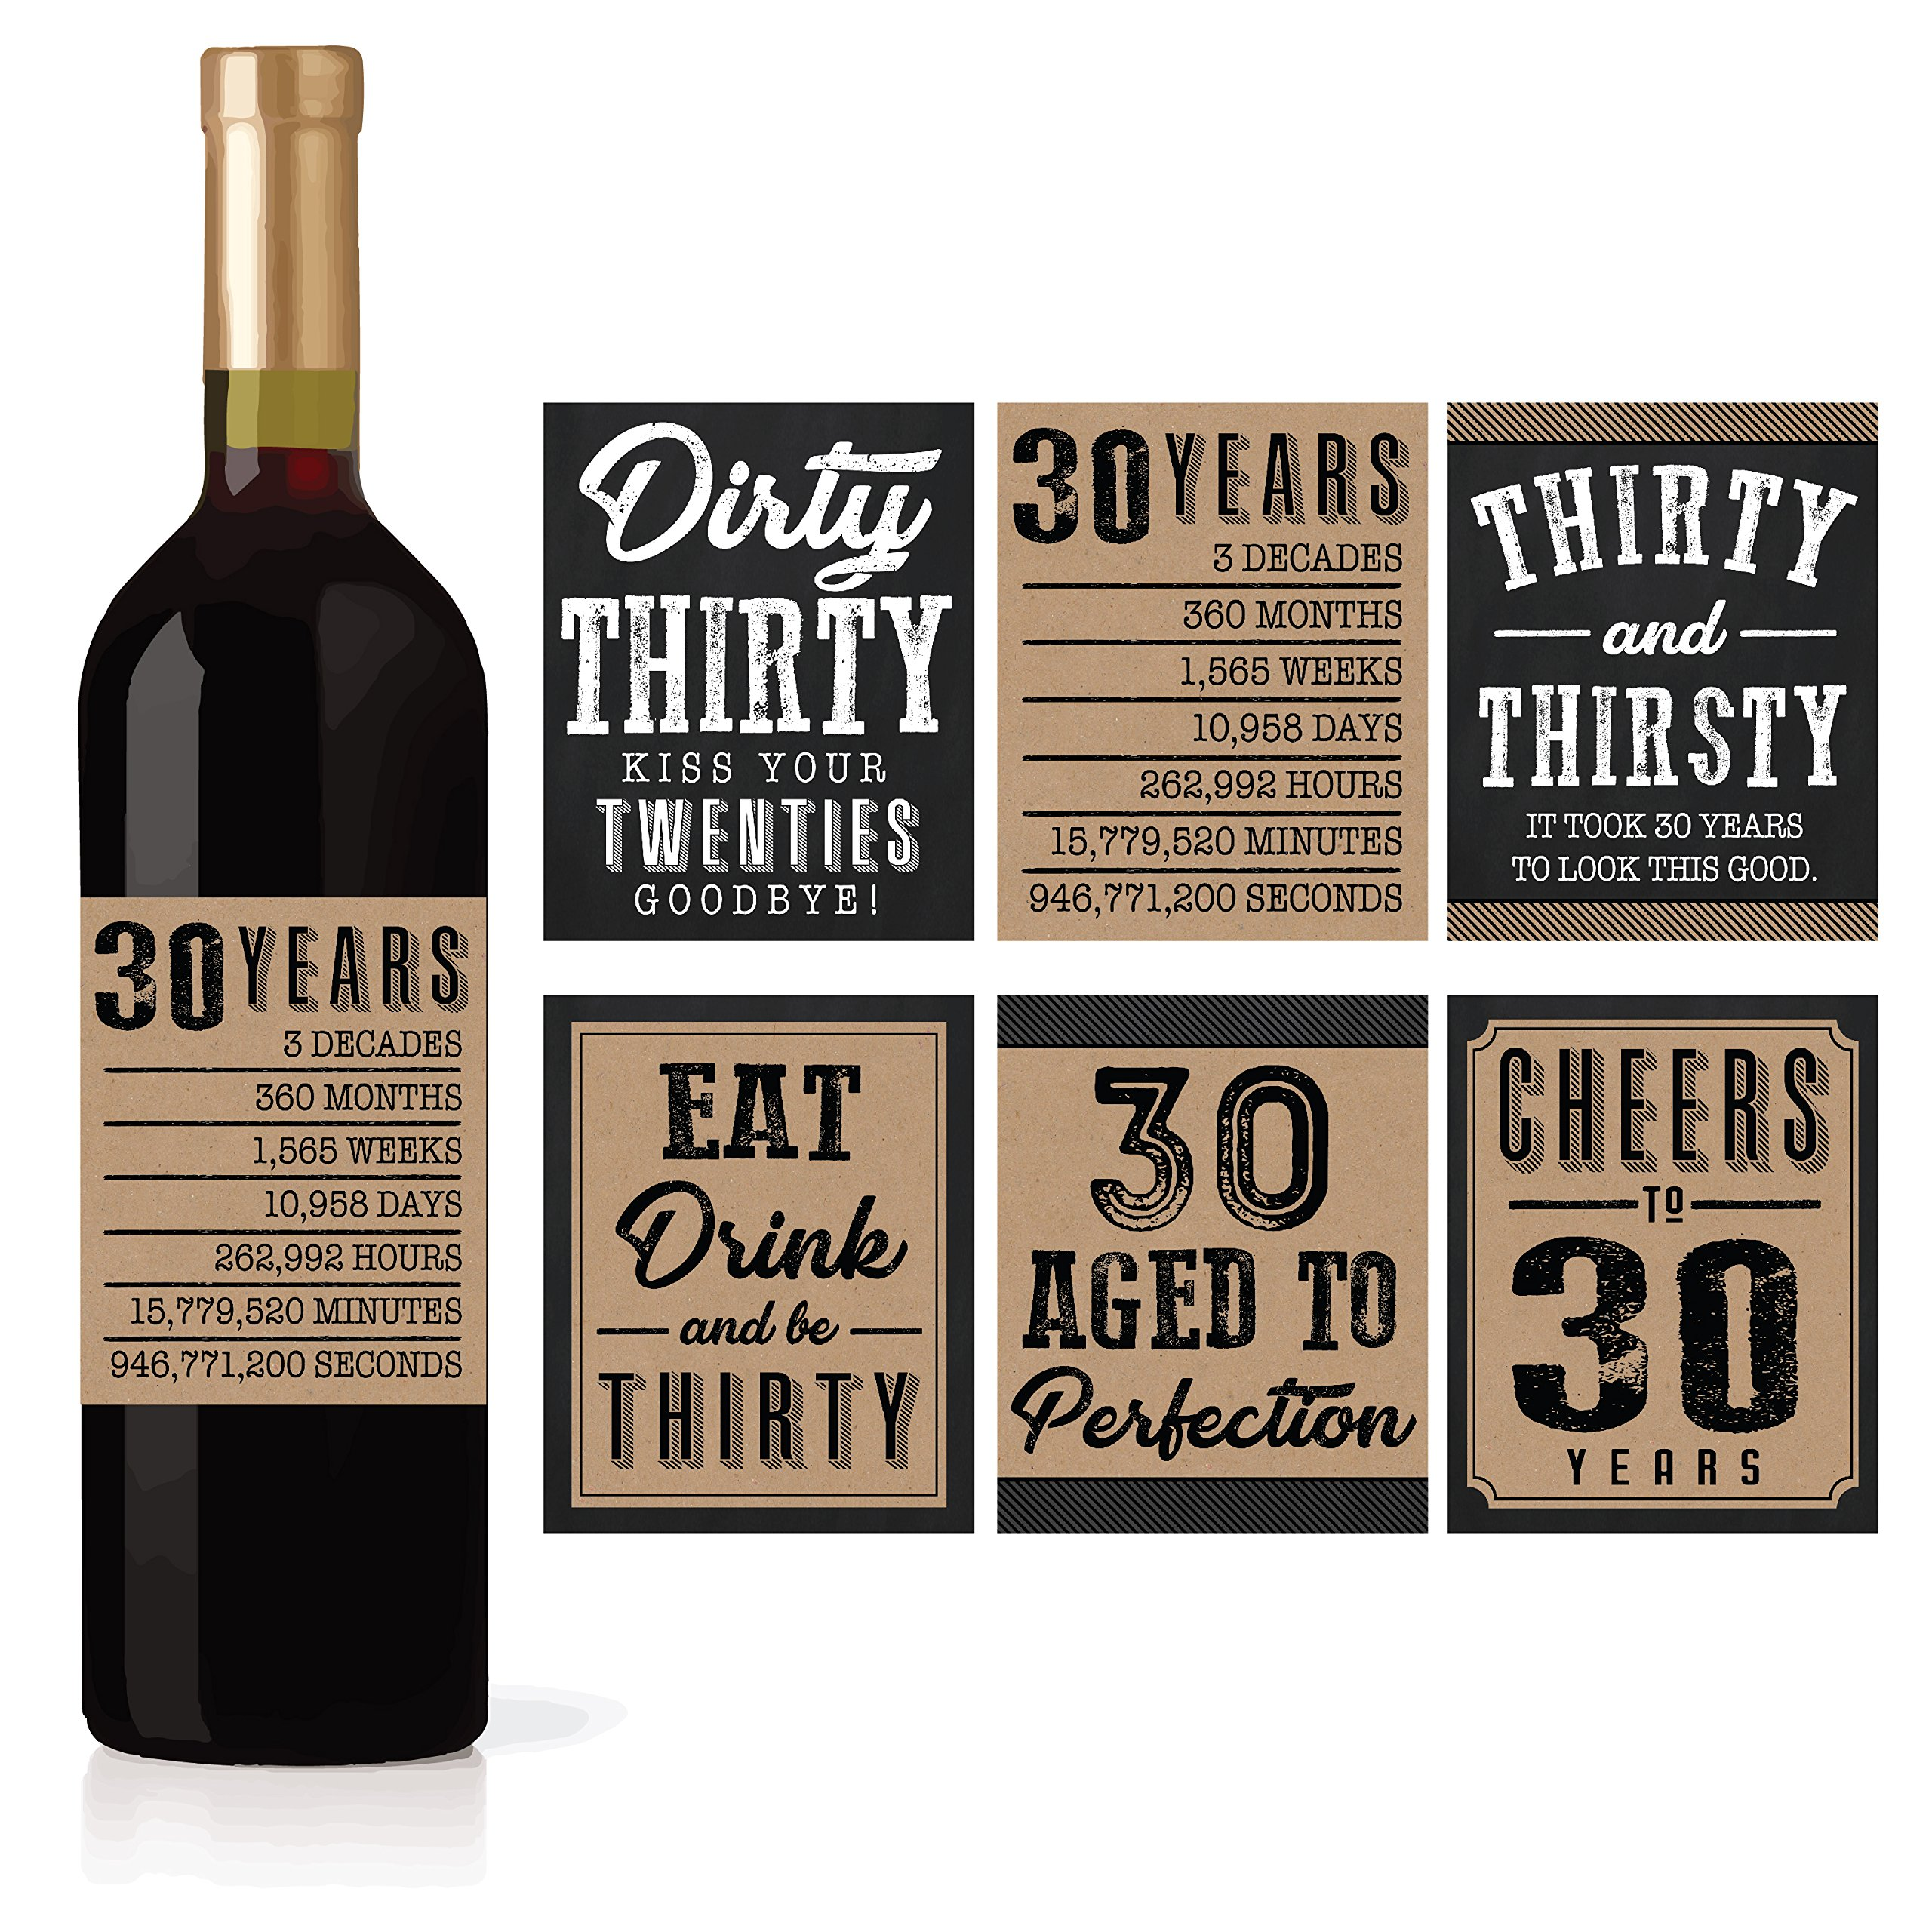 6 30th Birthday Wine or Beer Bottle Labels Stickers Present, 1989 Dirty Thirsty Thirty Bday Gifts For Him Men, Cheers to 30 Years, Funny Unique Party Decorations and Novelty Supplies For Man Husband by Hadley Designs